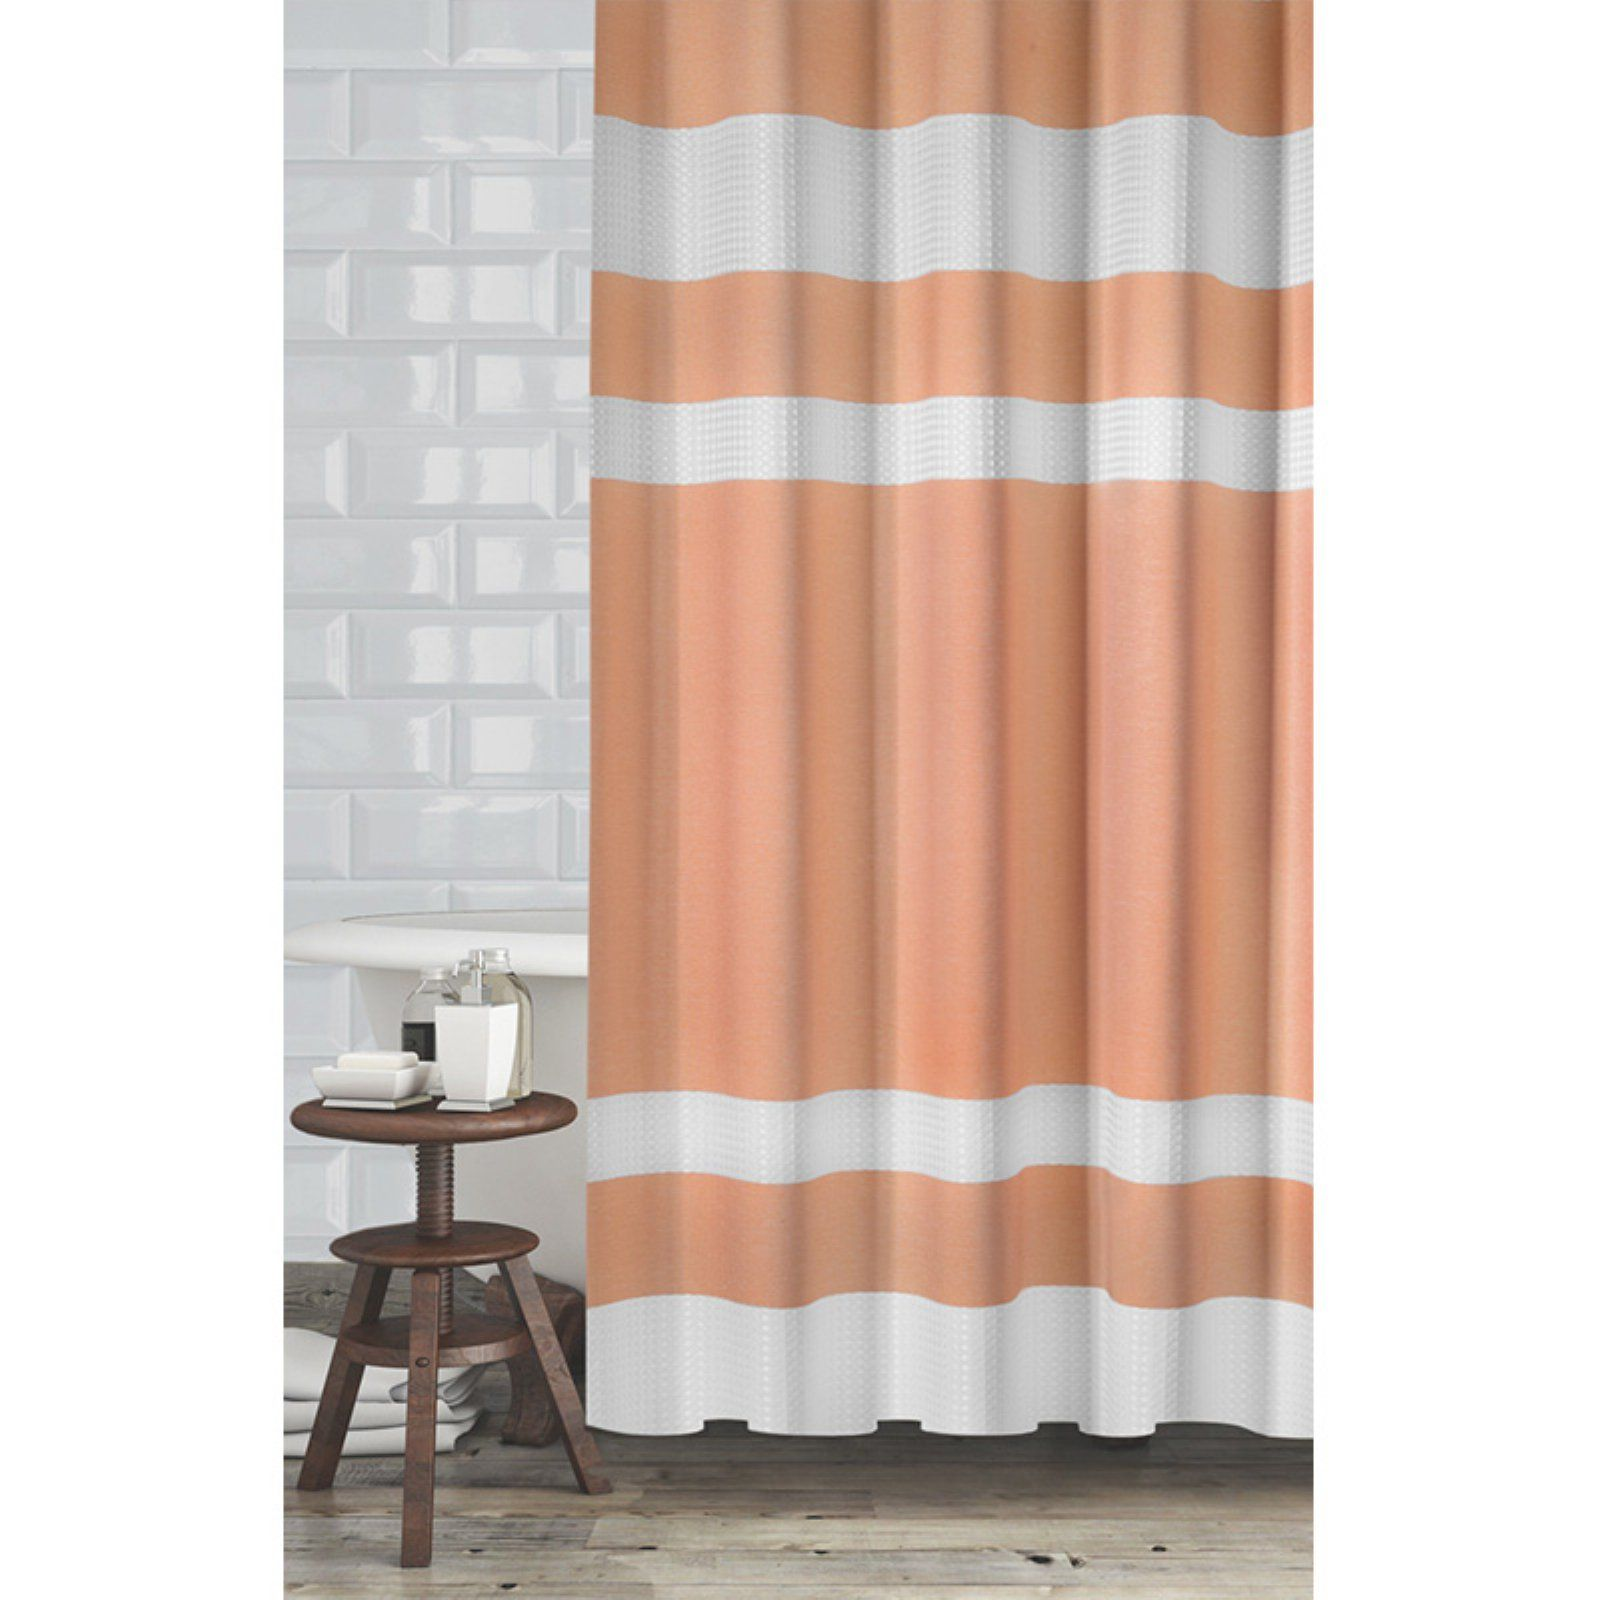 Popular Bath New England Shower Curtain Coral White Curtains